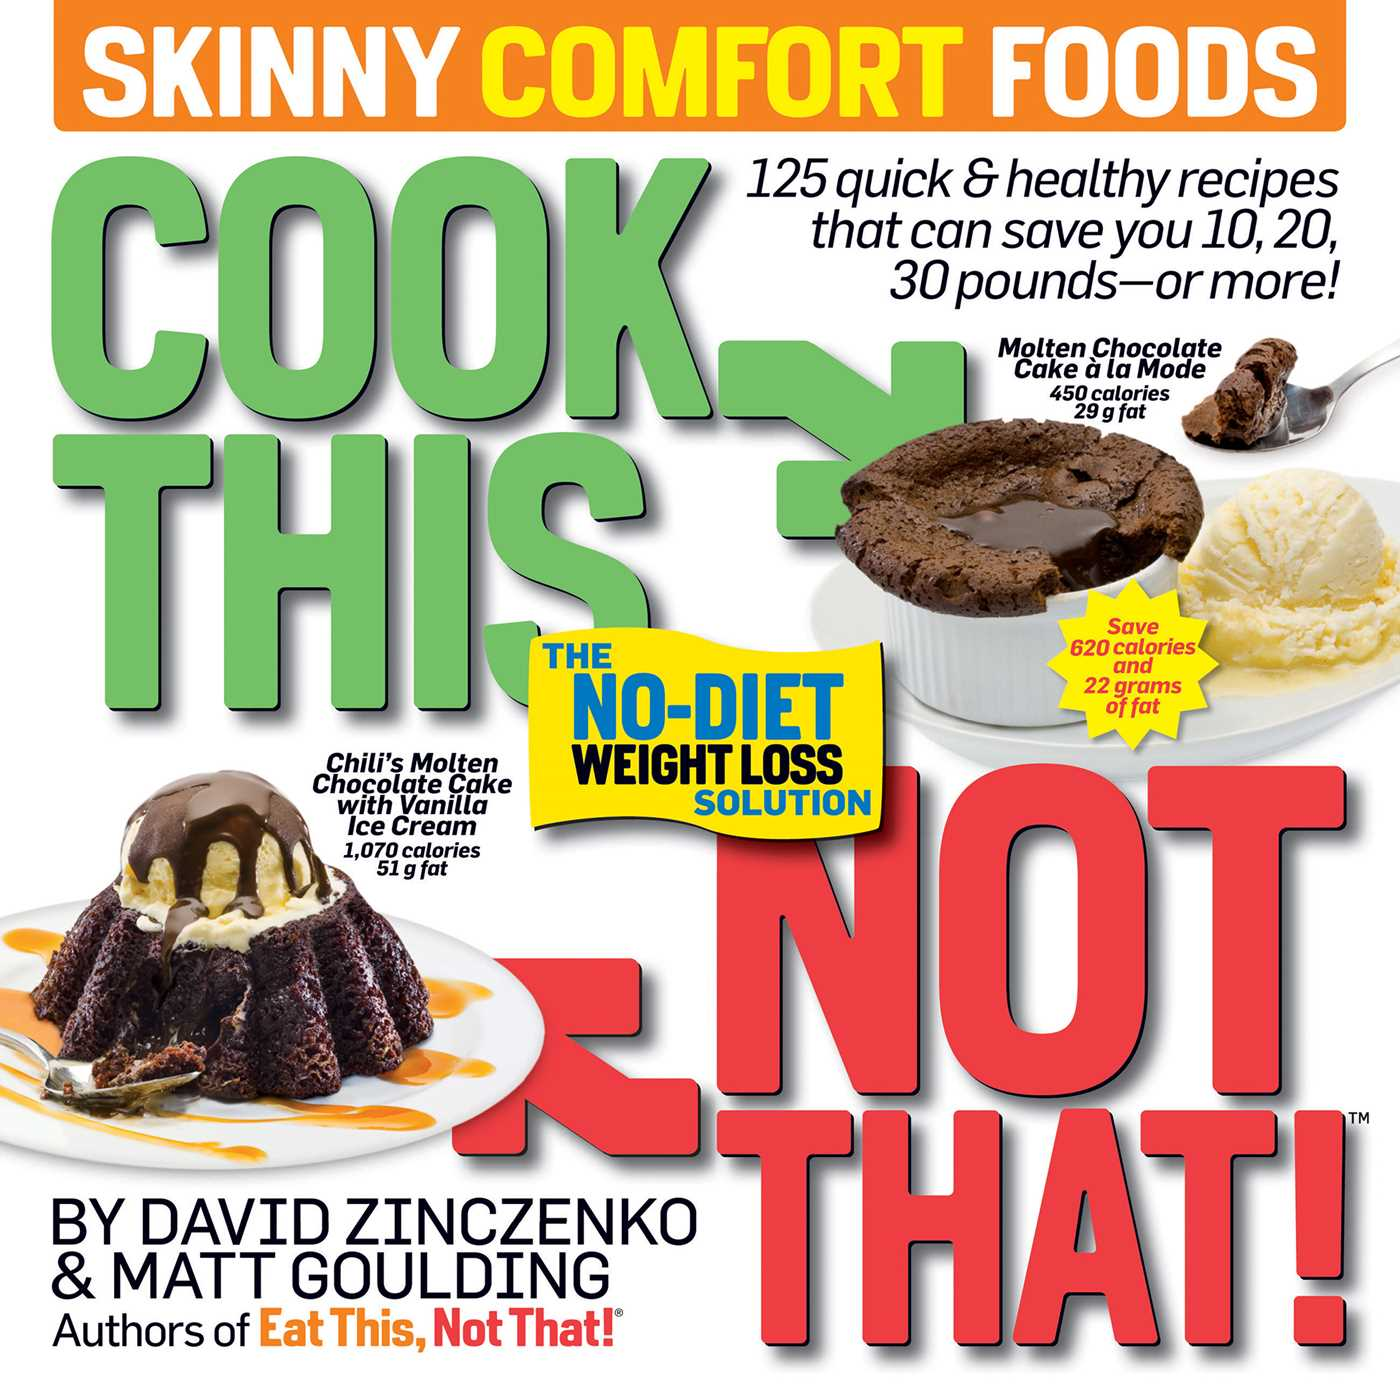 Cook this not that skinny comfort foods 9781101884461 hr